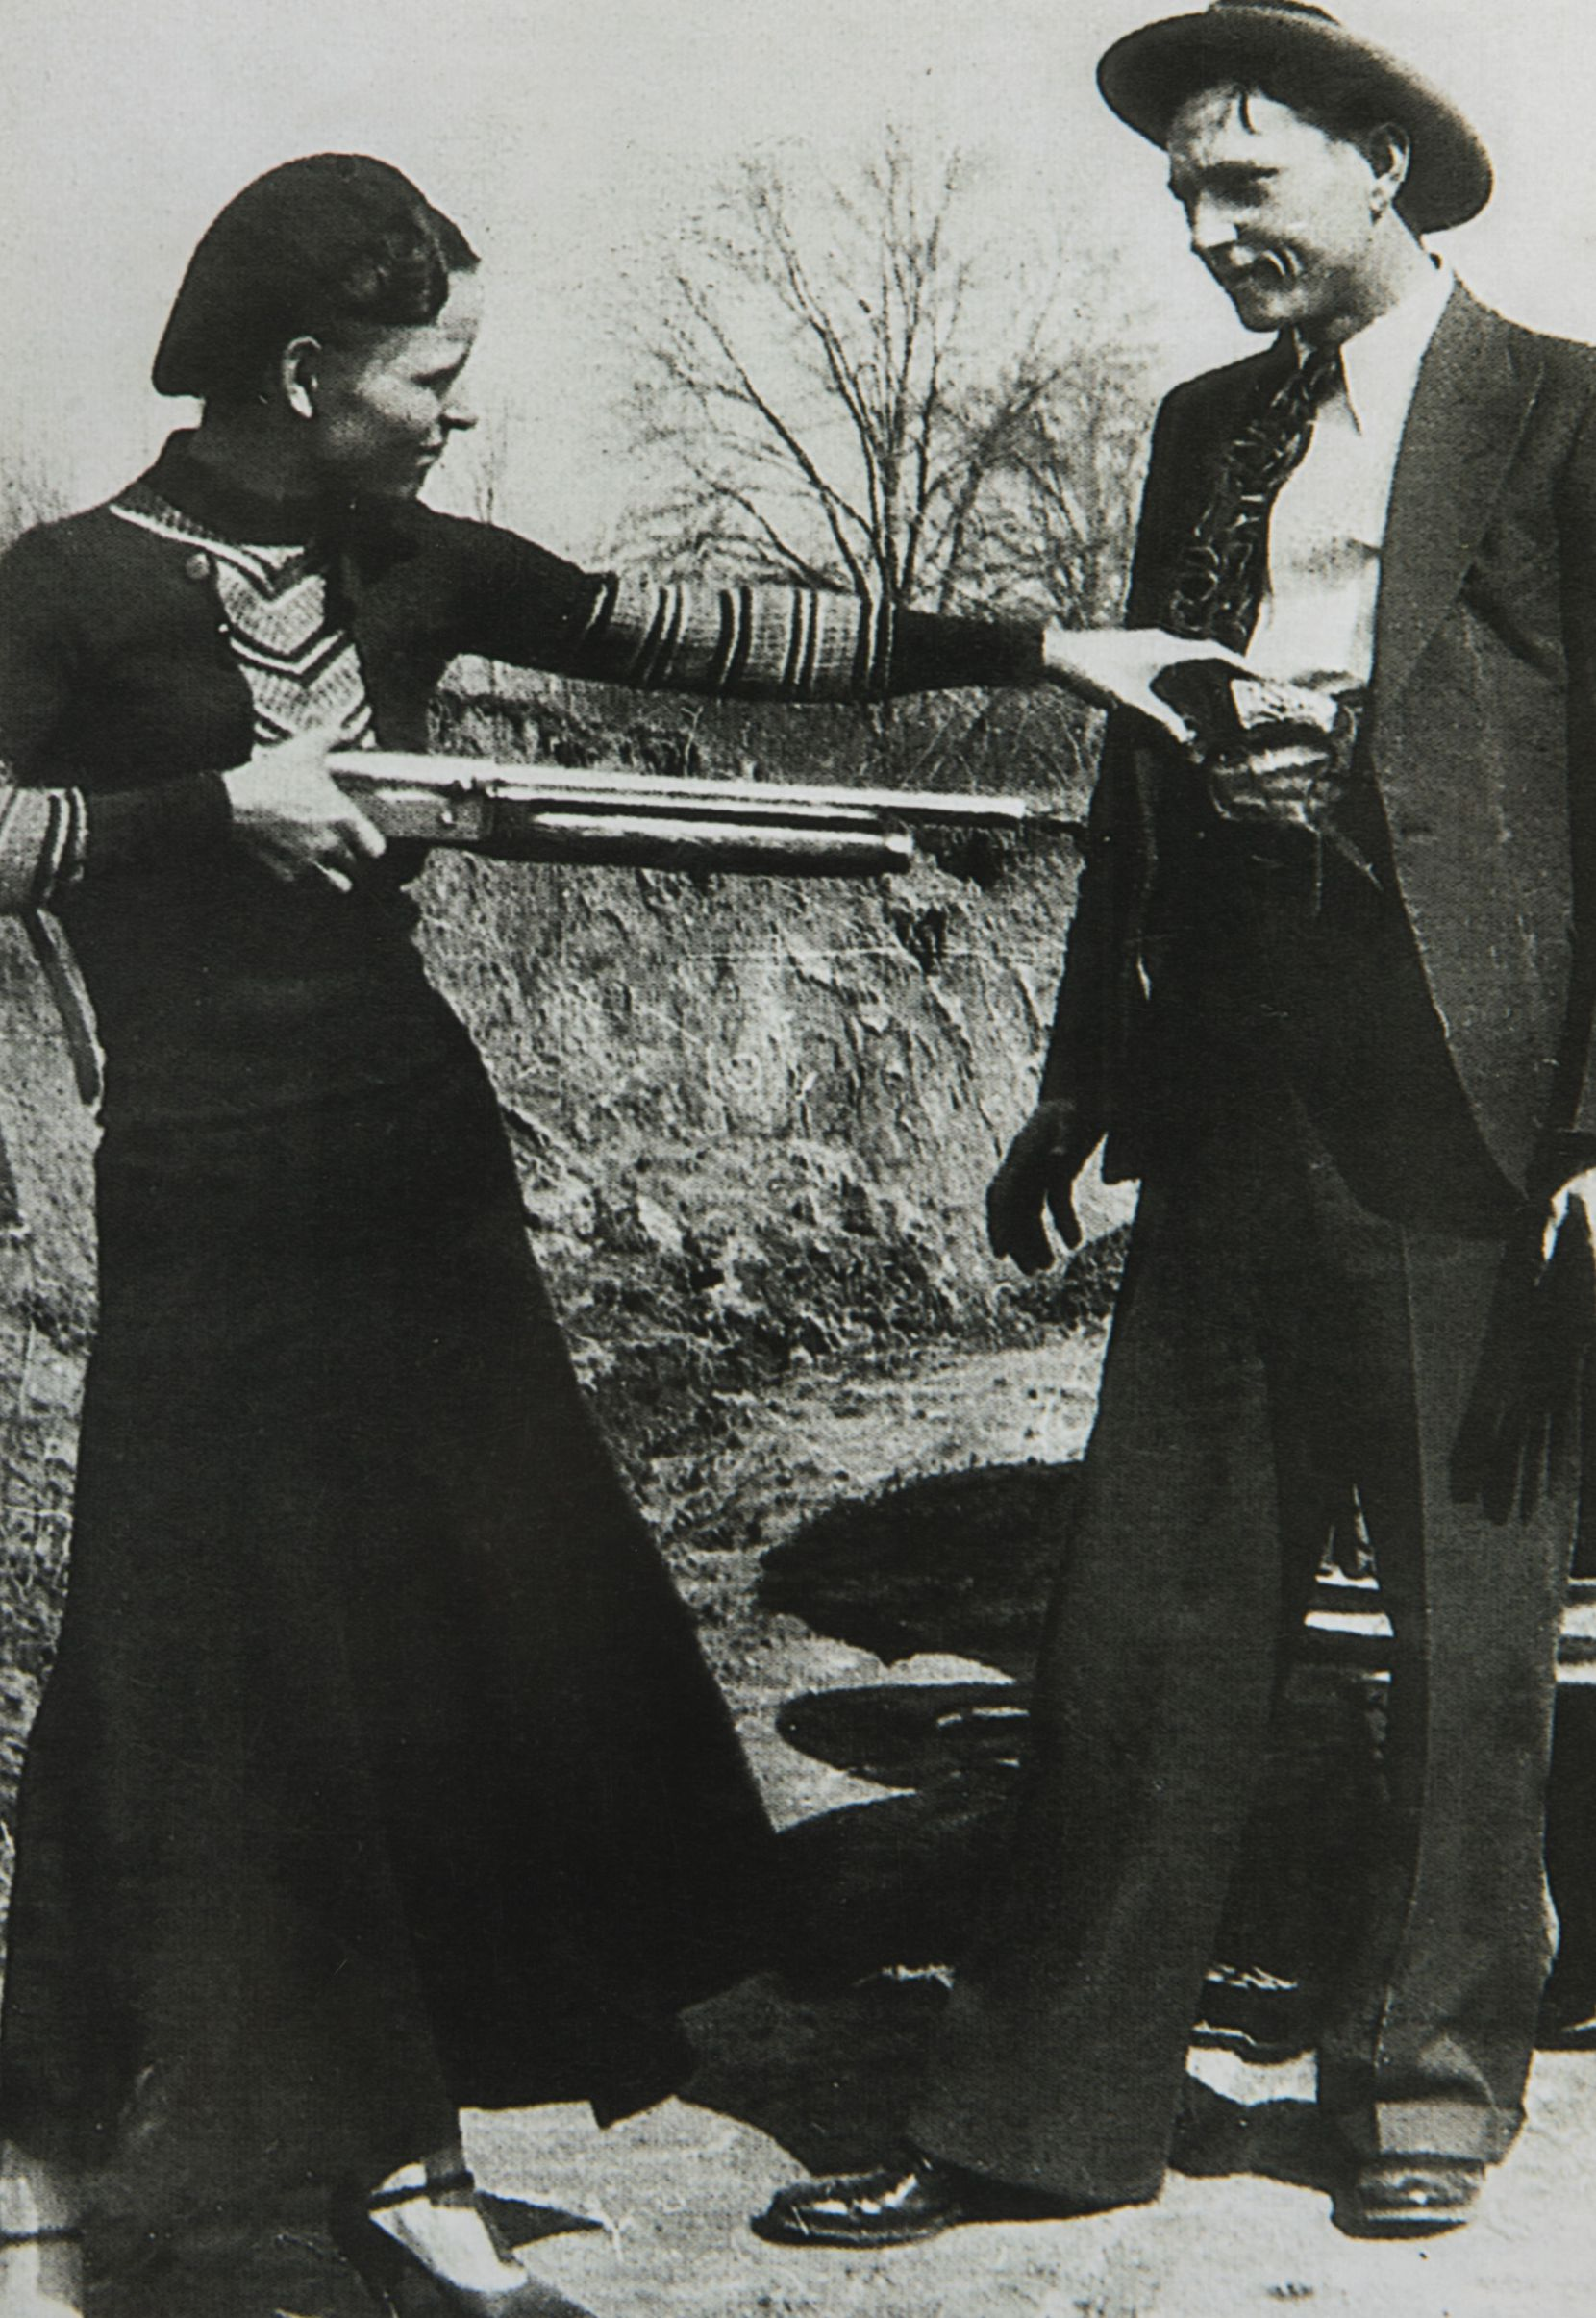 Clyde Barrow and Bonnie Parker posed for a photo in 1932 in the Ozarks. (Photo courtesy of Buddy Barrow)